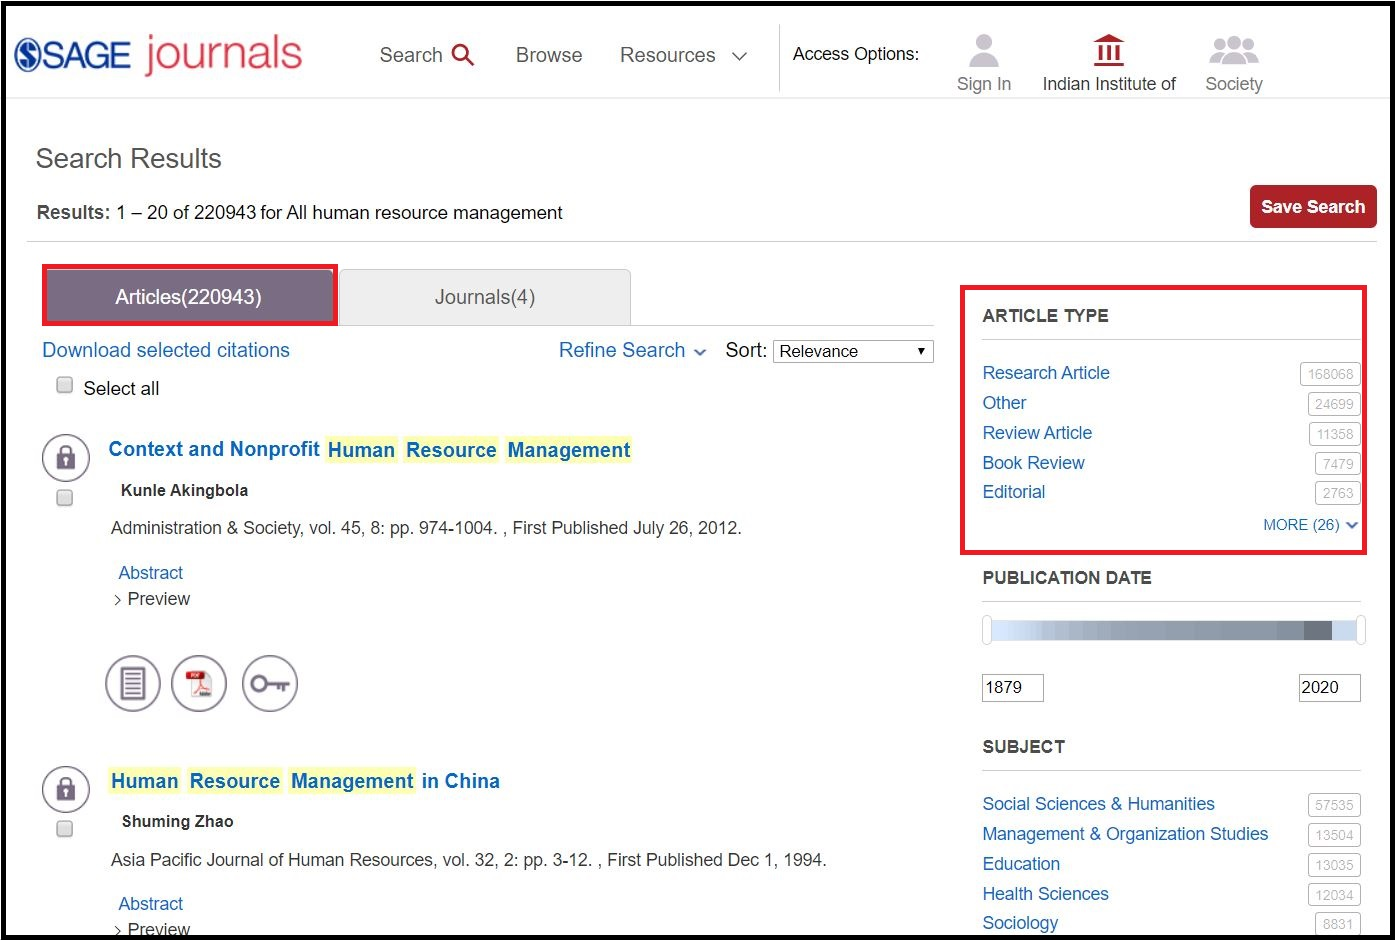 Open SAGE Journals then Search for Required Subject and Click on Required Article Type